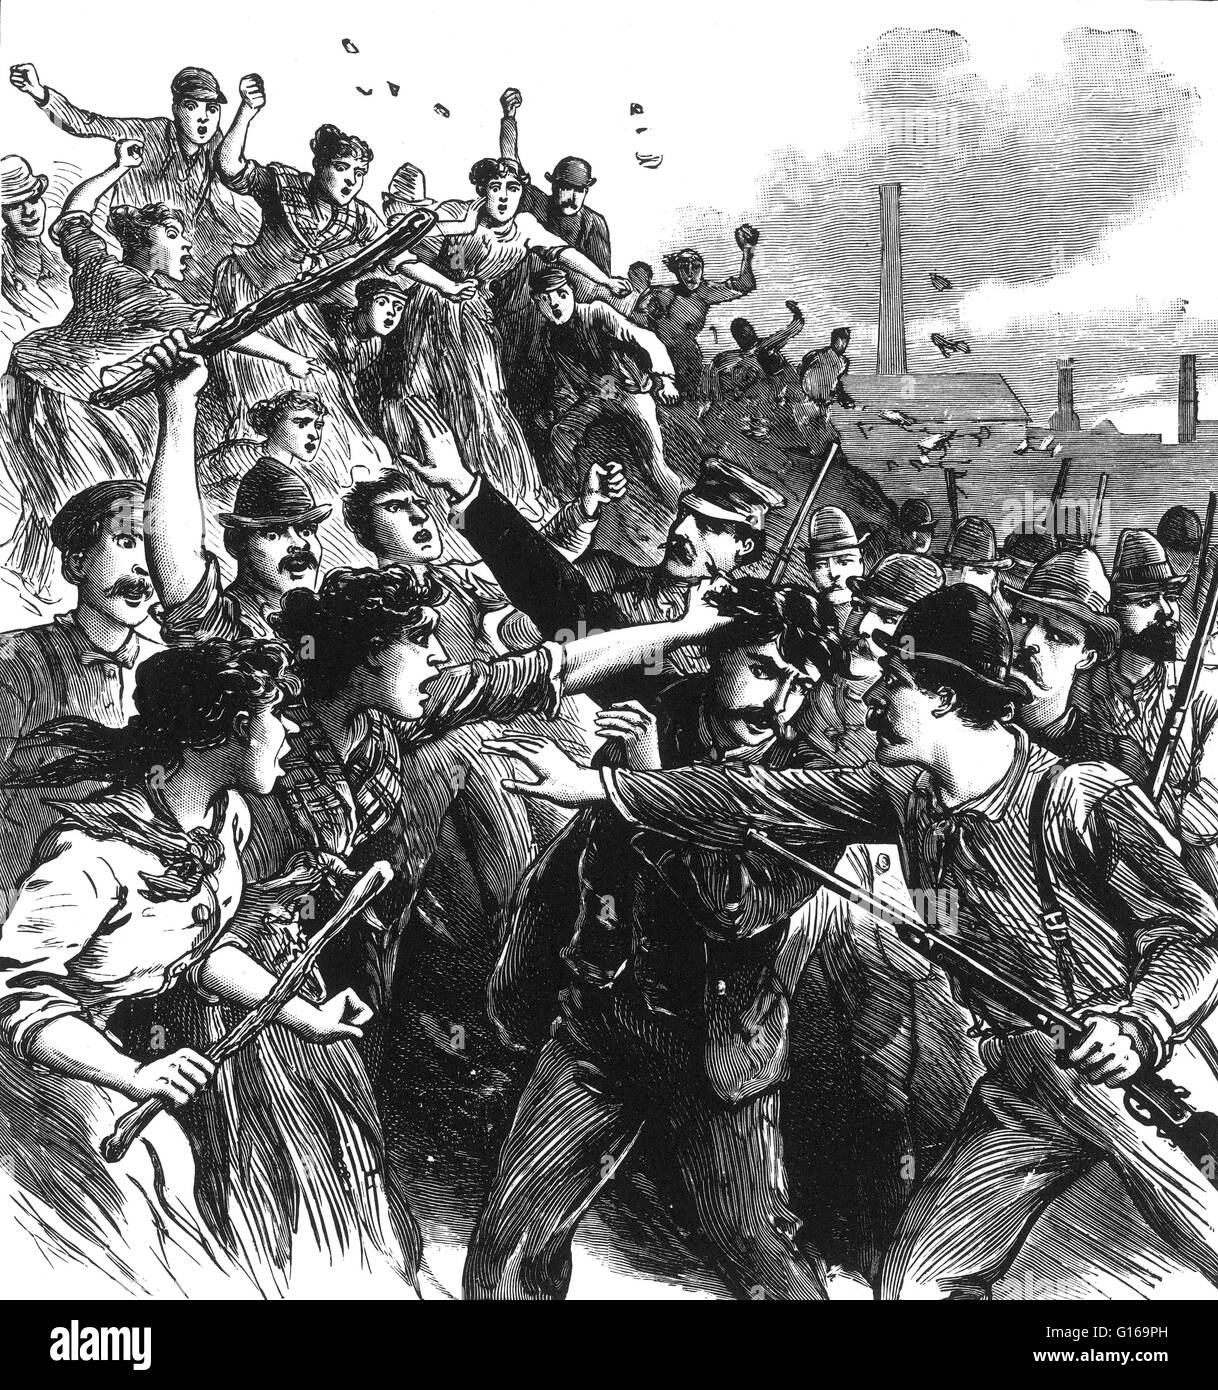 The Homestead Strike was an industrial lockout and strike which began on June 30, 1892, culminating in a battle - Stock Image